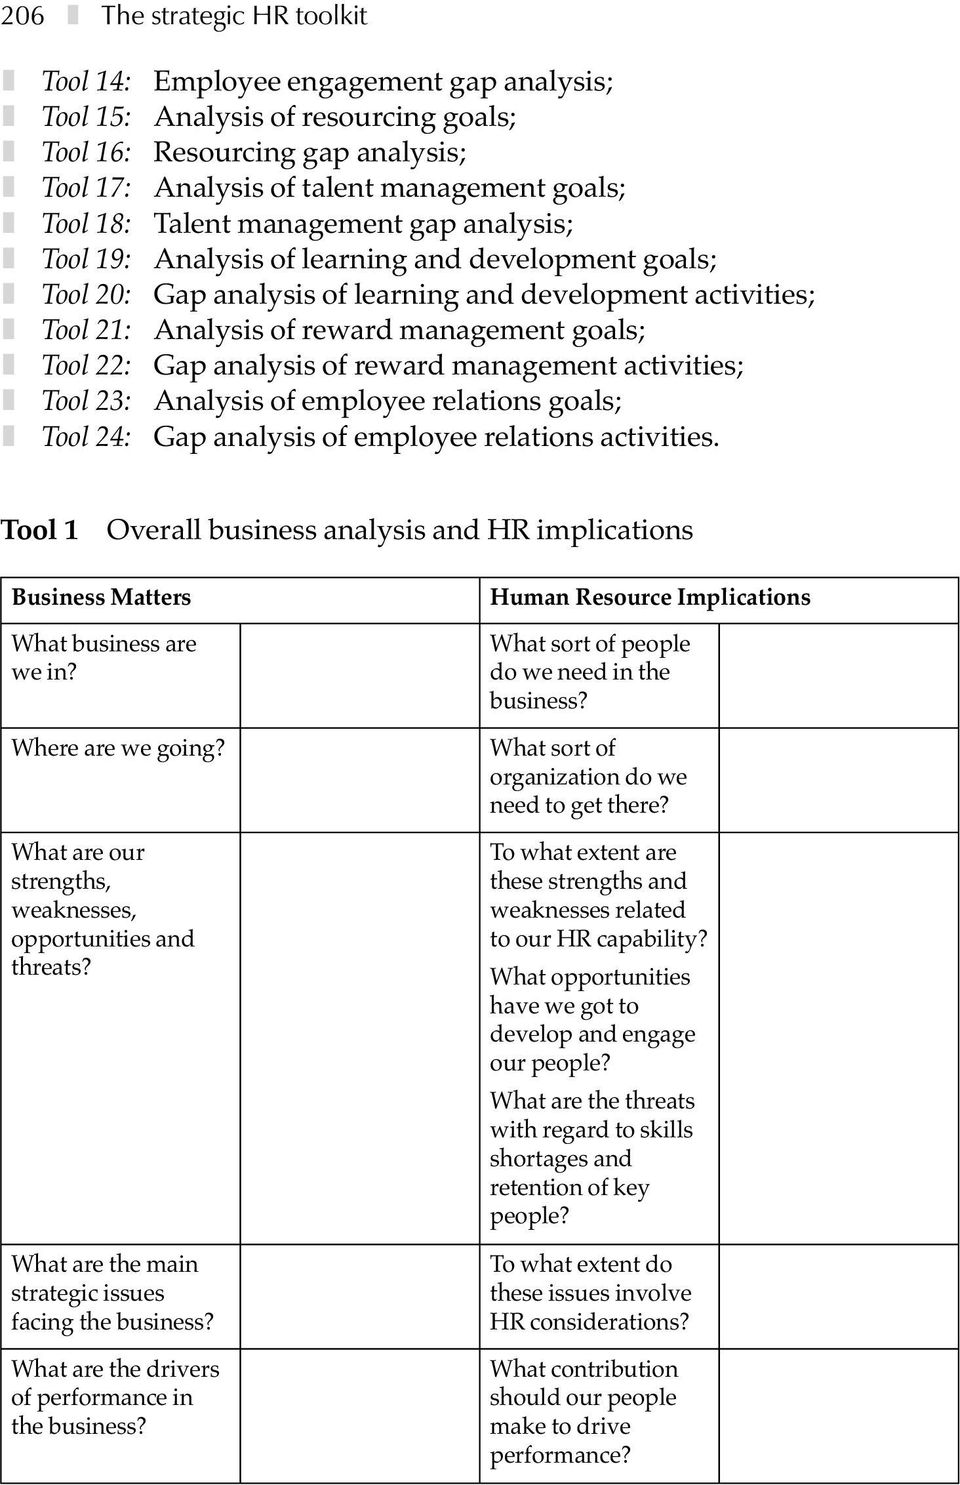 management goals; l Tool 22: Gap analysis of reward management activities; l Tool 23: Analysis of employee relations goals; l Tool 24: Gap analysis of employee relations activities.